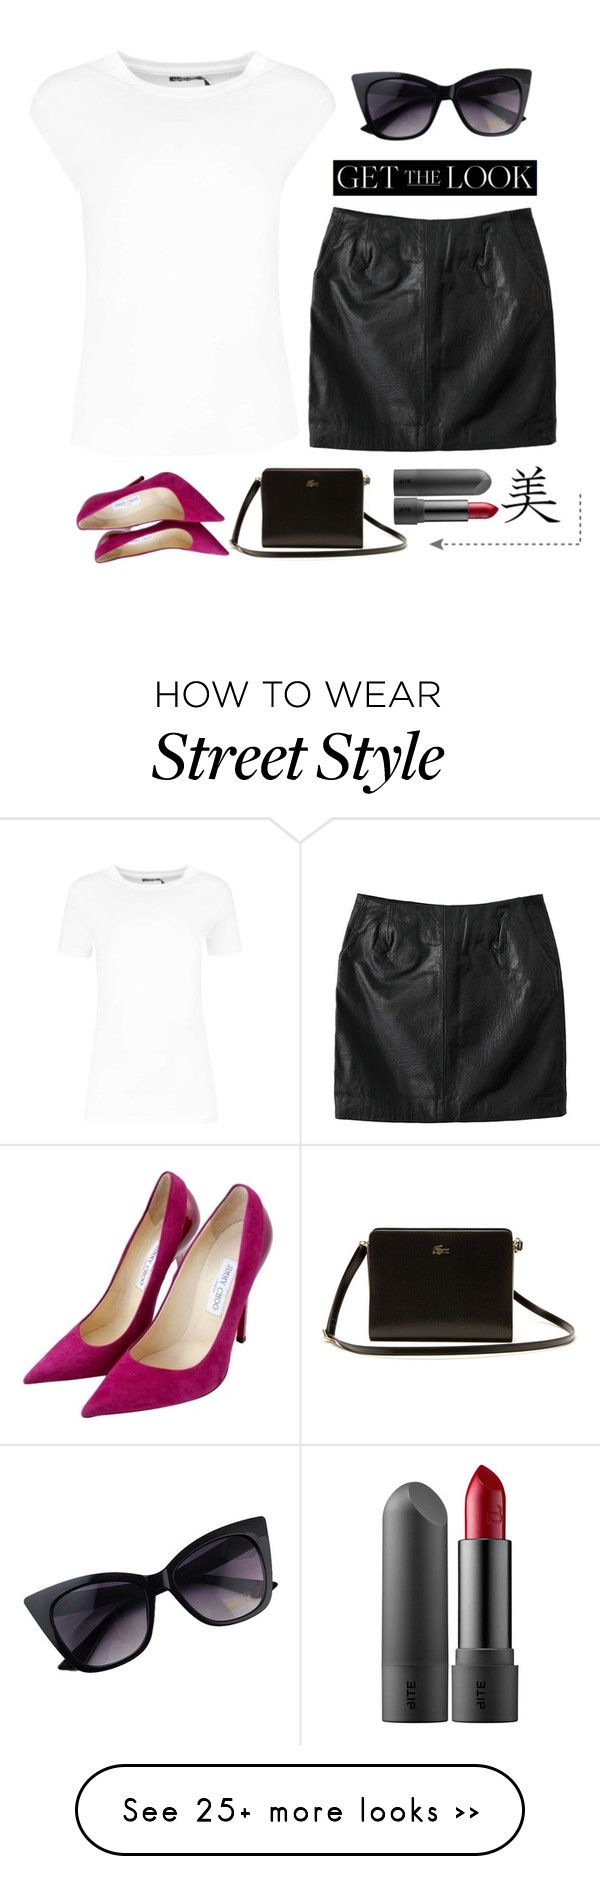 """KSS.3"" by kay-kay-1 on Polyvore featuring Jaggar, Lacoste and Jimmy Choo"